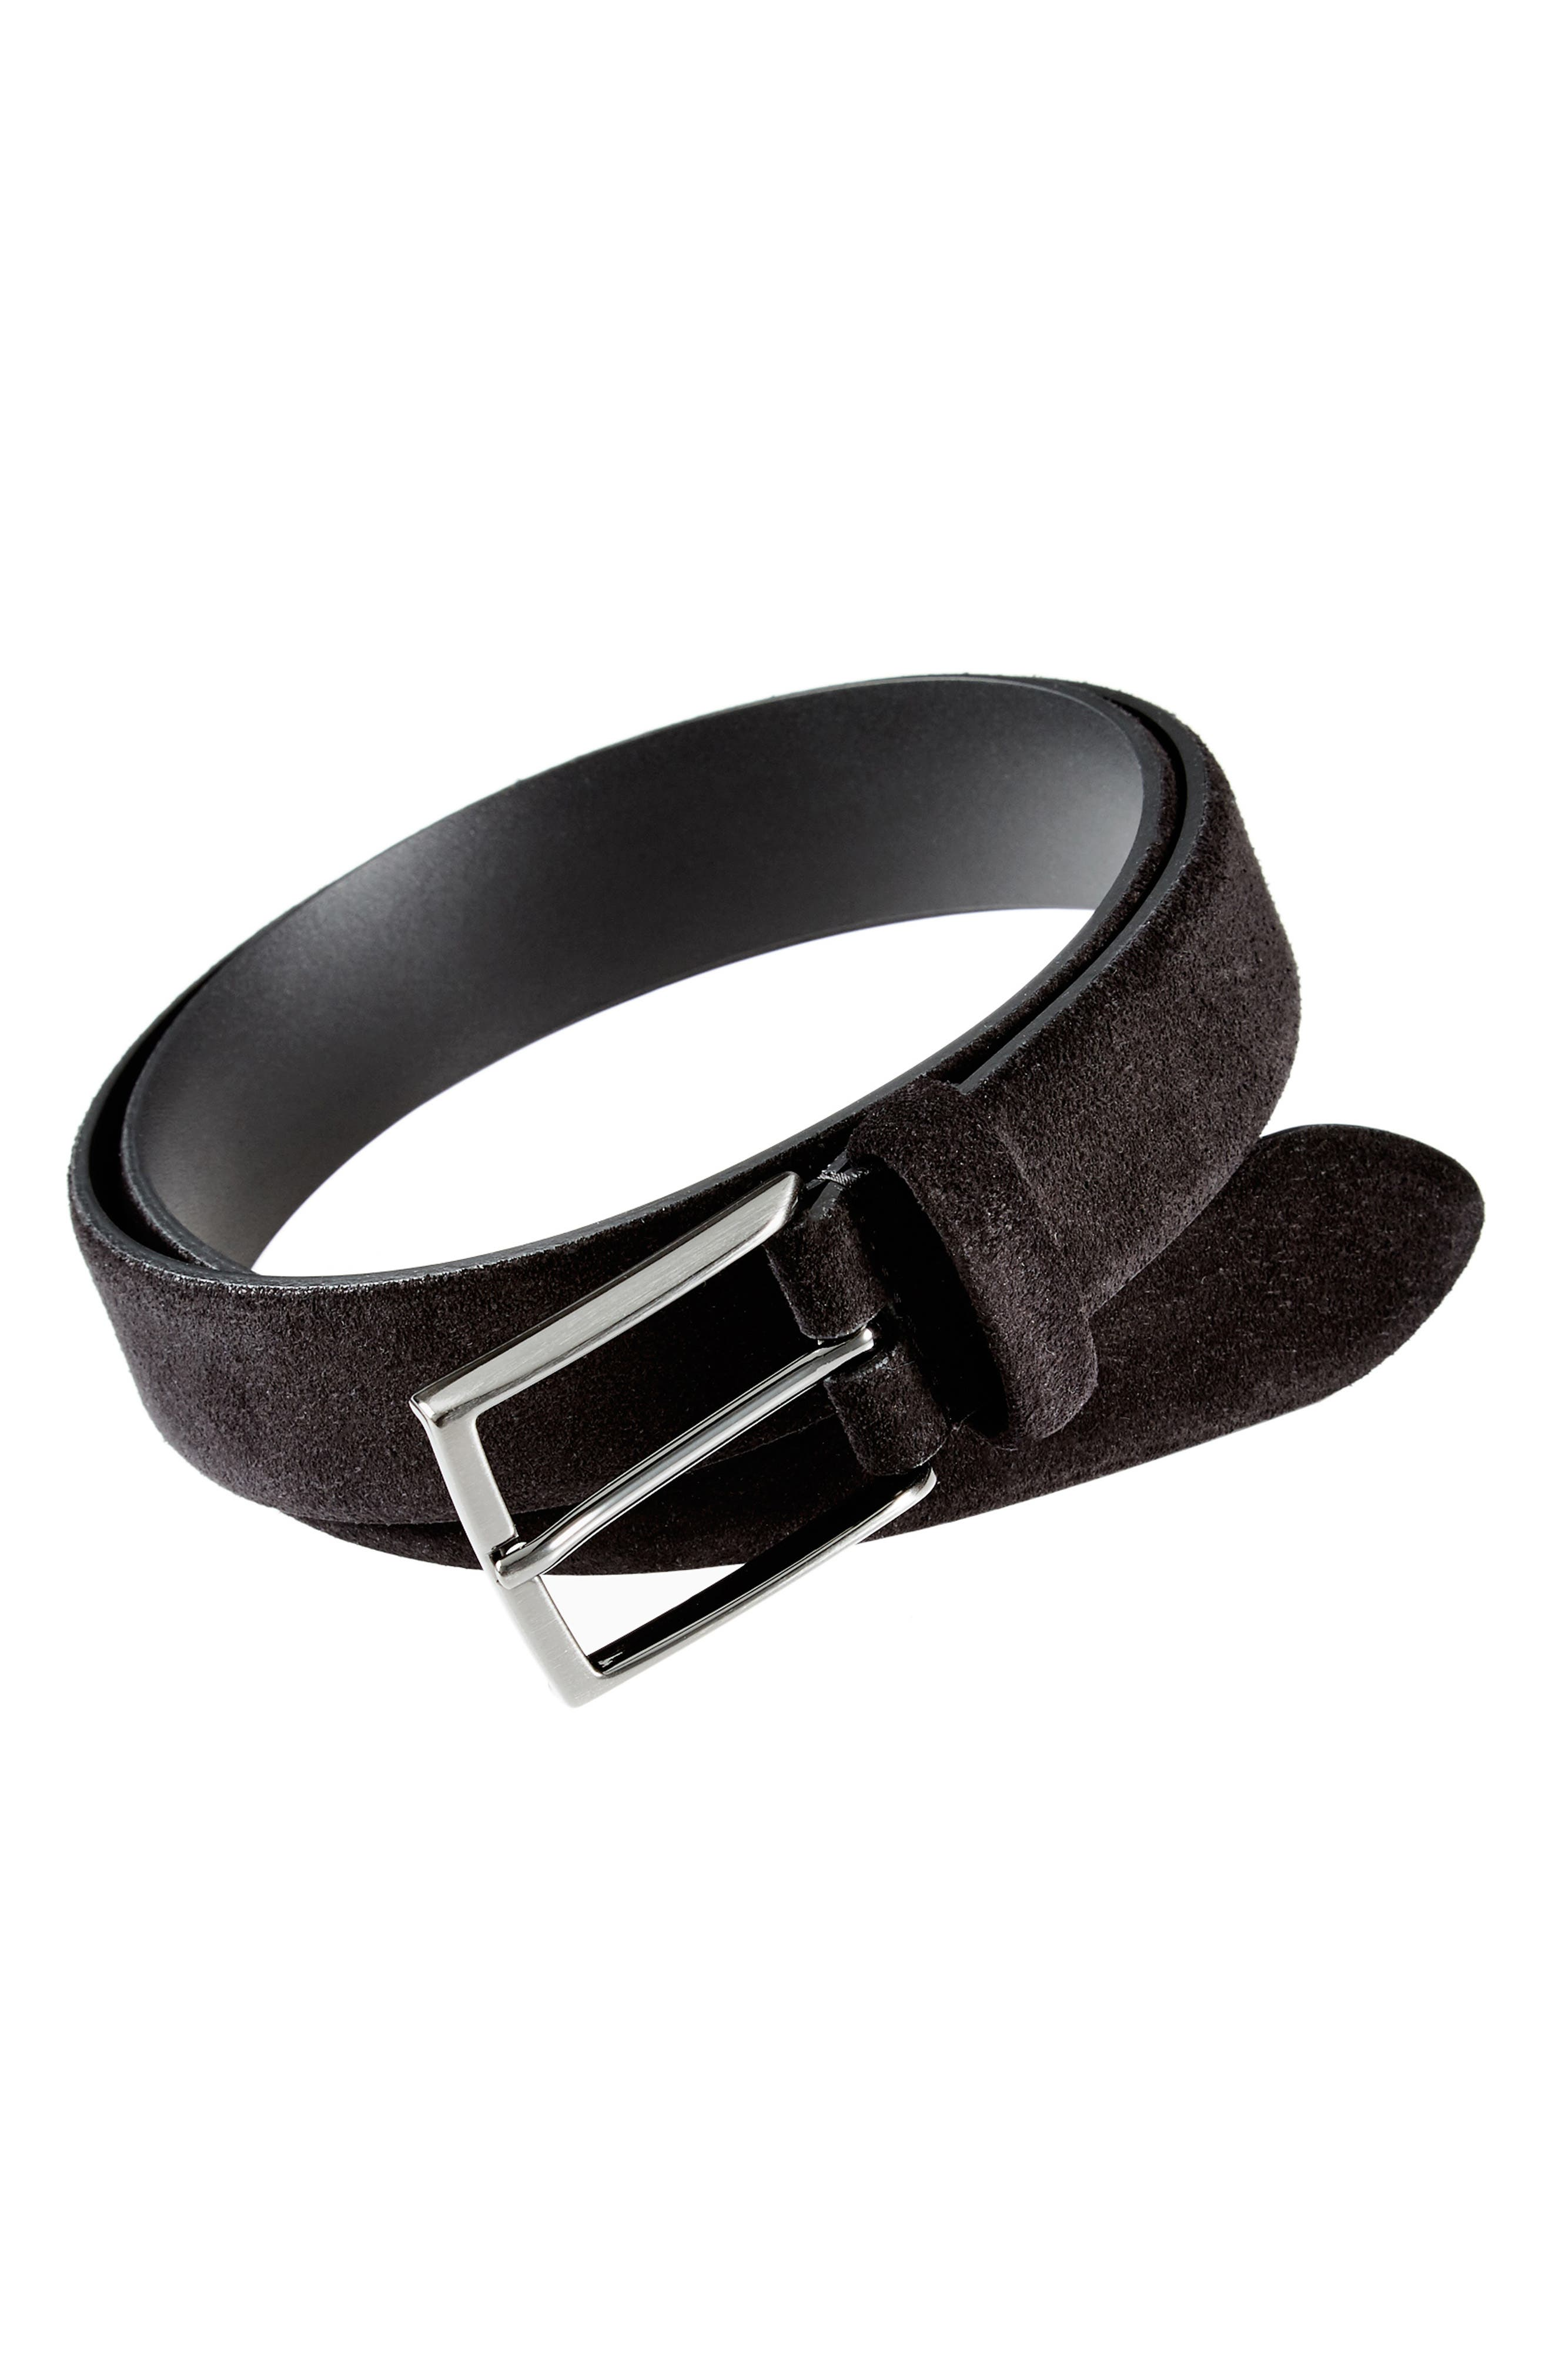 ANDERSONS Suede Belt in Brown